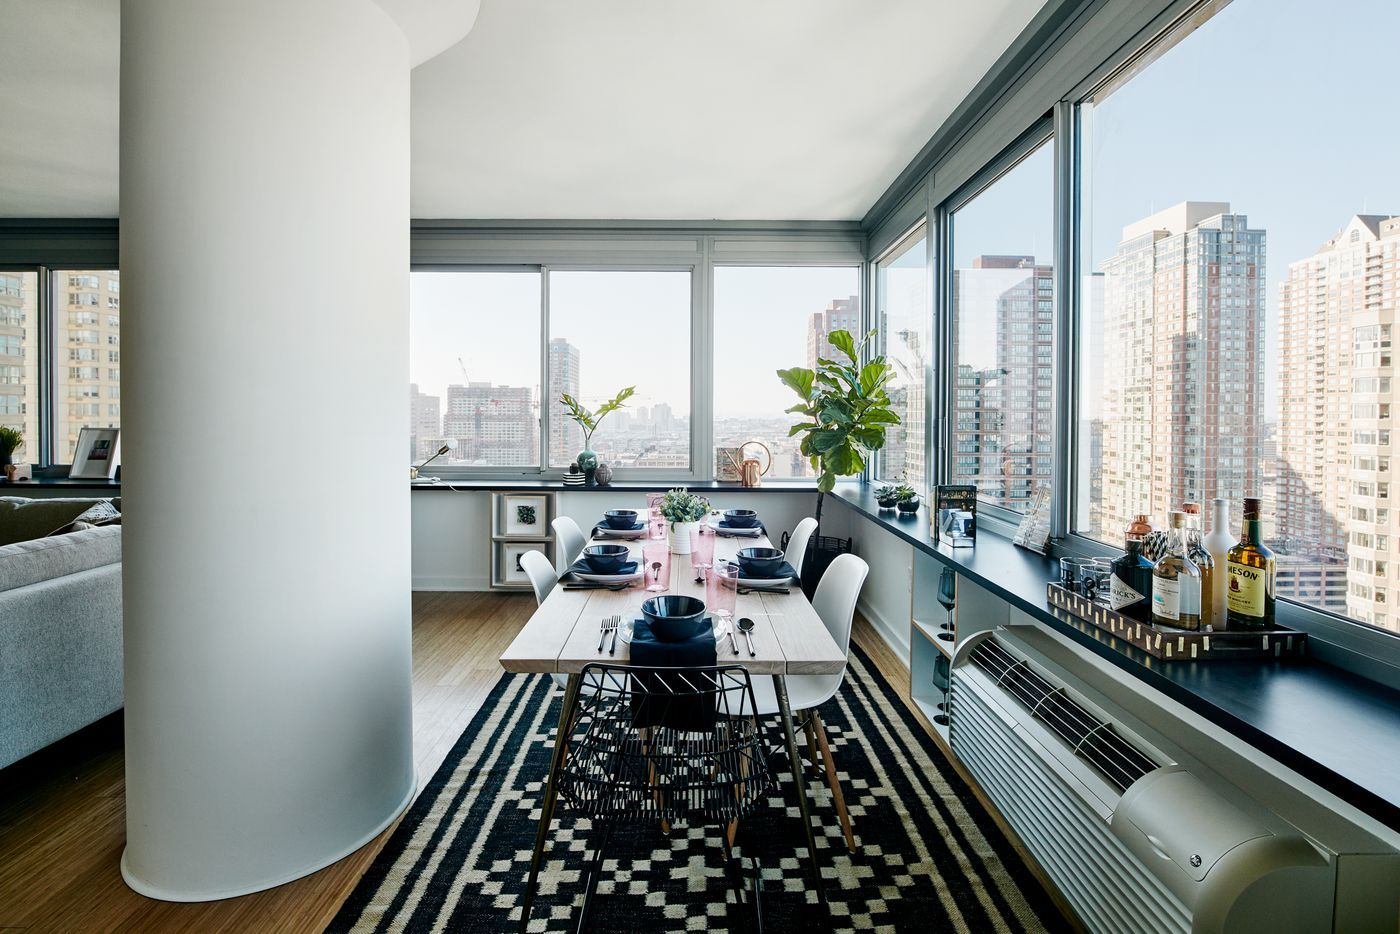 Rentals at Urby's Jersey City skyscraper hit the market